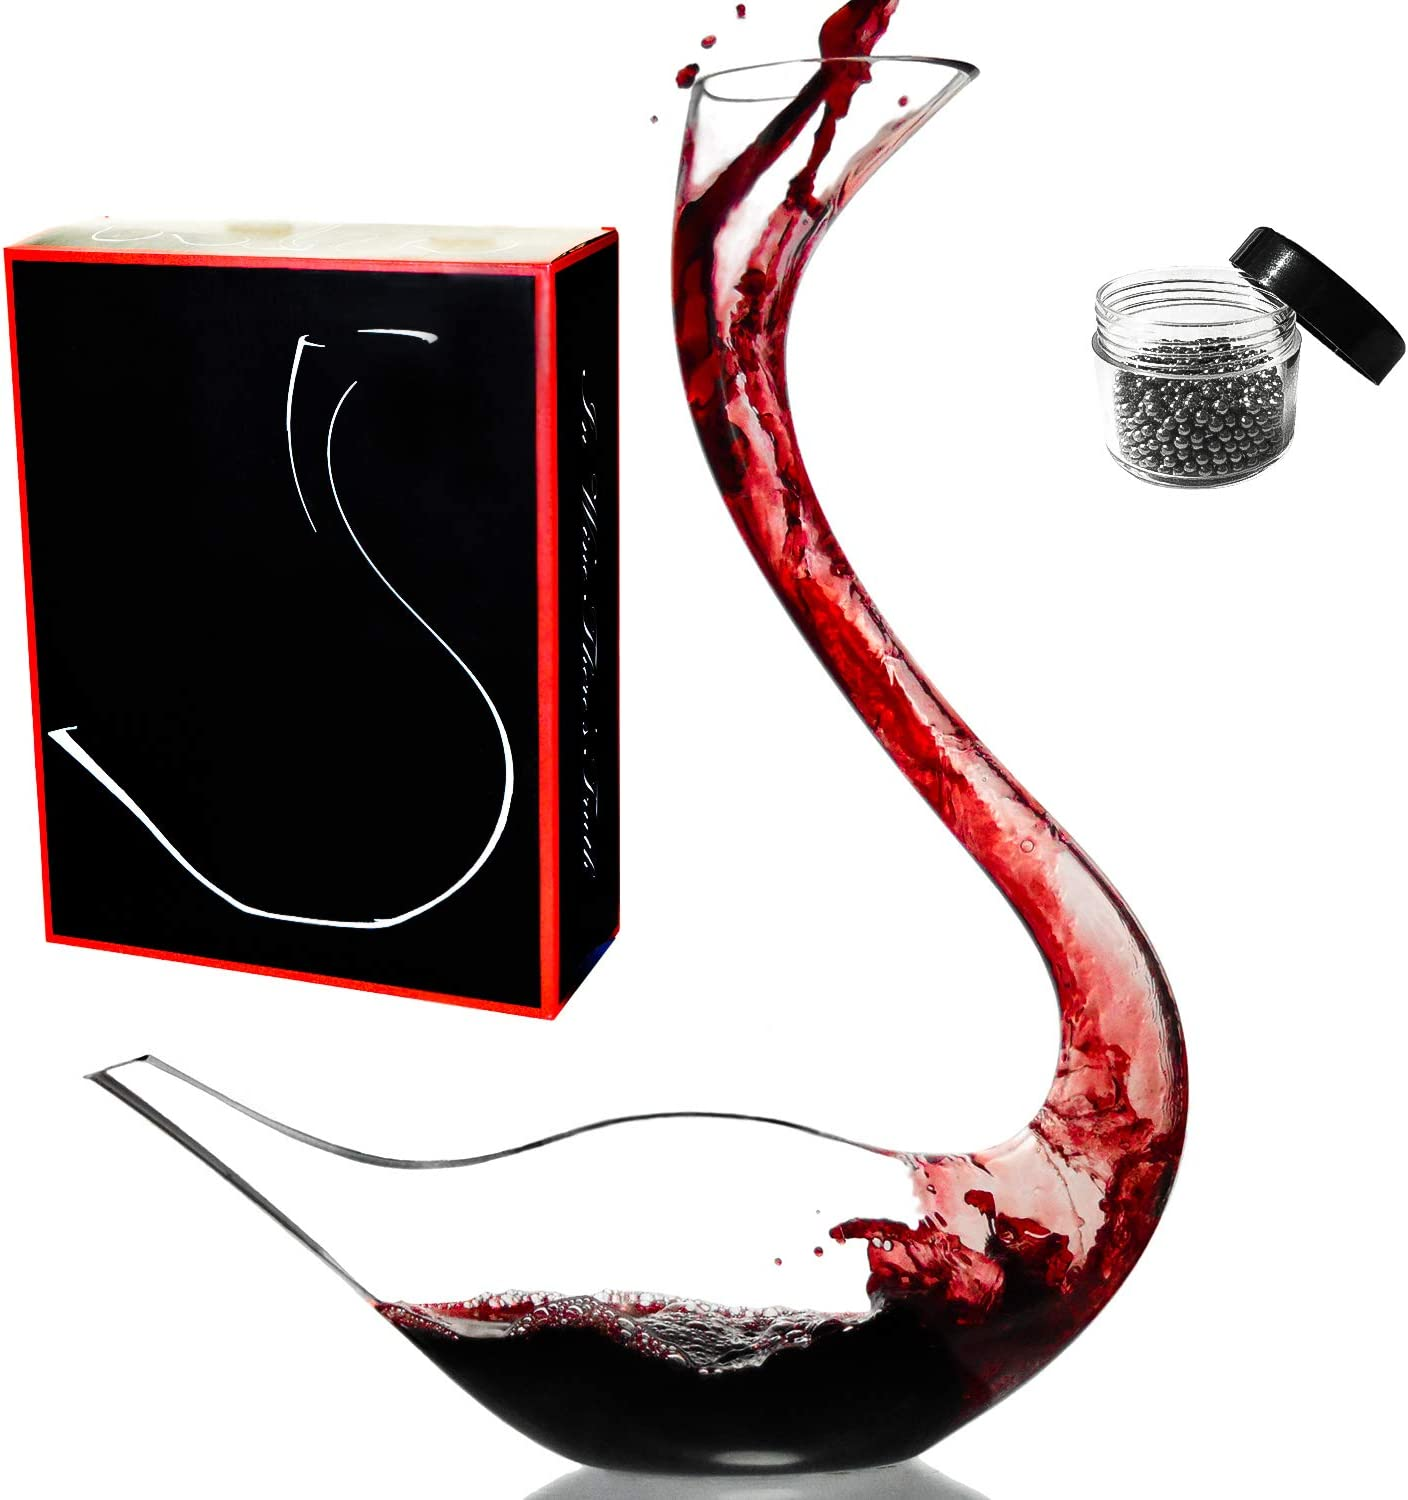 Le Sens Amazing Home Cygnus Wine Decanter 100% Hand Blown Crystal Glass Swan Decanter, Red Wine Carafe, Wine Present, Wine Accessories, Delicate Box Wrapped and Cleaning Beads Set